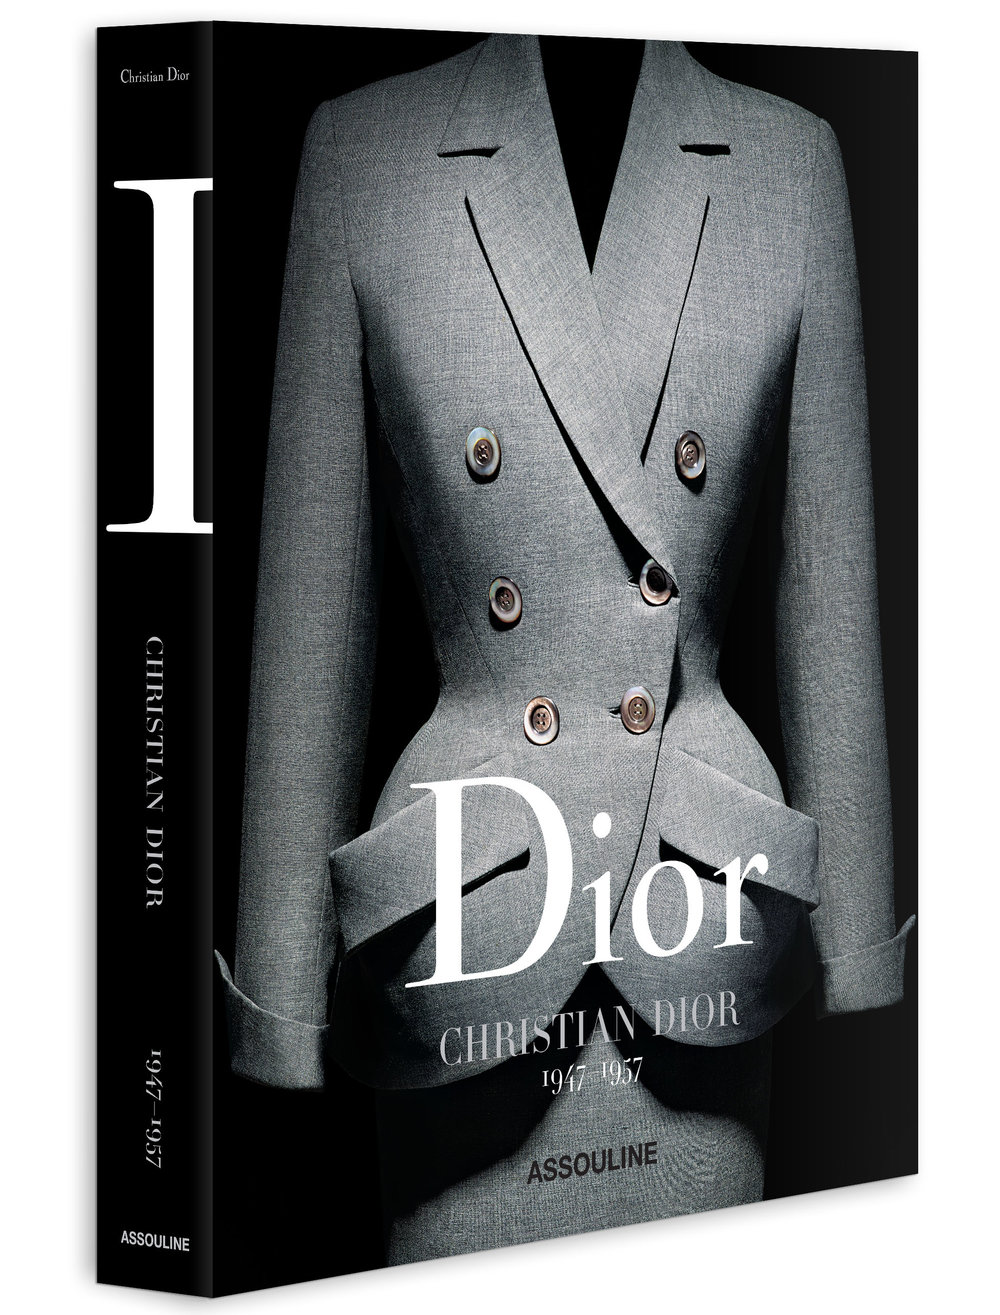 Dior by Christian Dior cover - Credit Dior.jpg